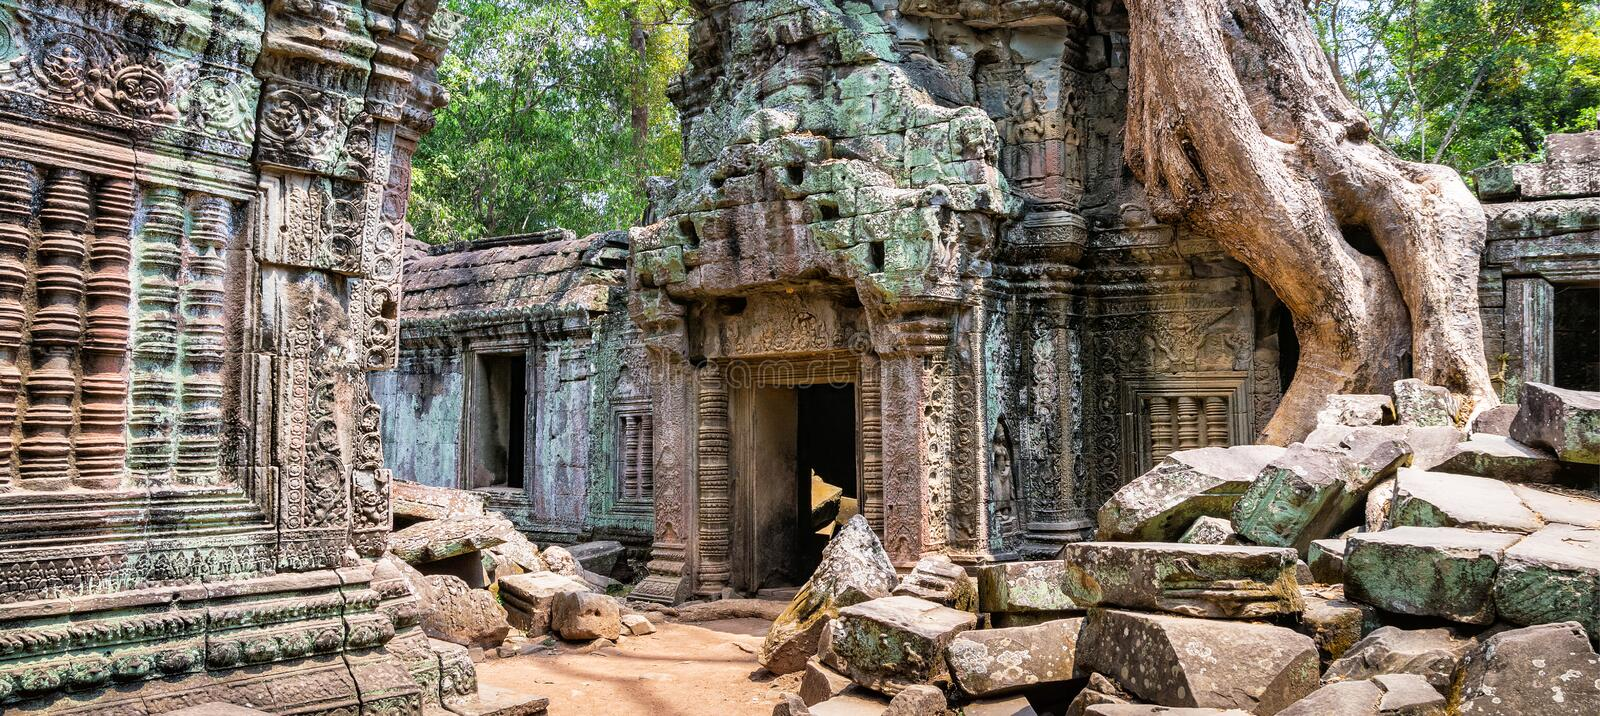 Tree roots over the beautiful Ta Prohm temple at Angkor, Siem Re stock image